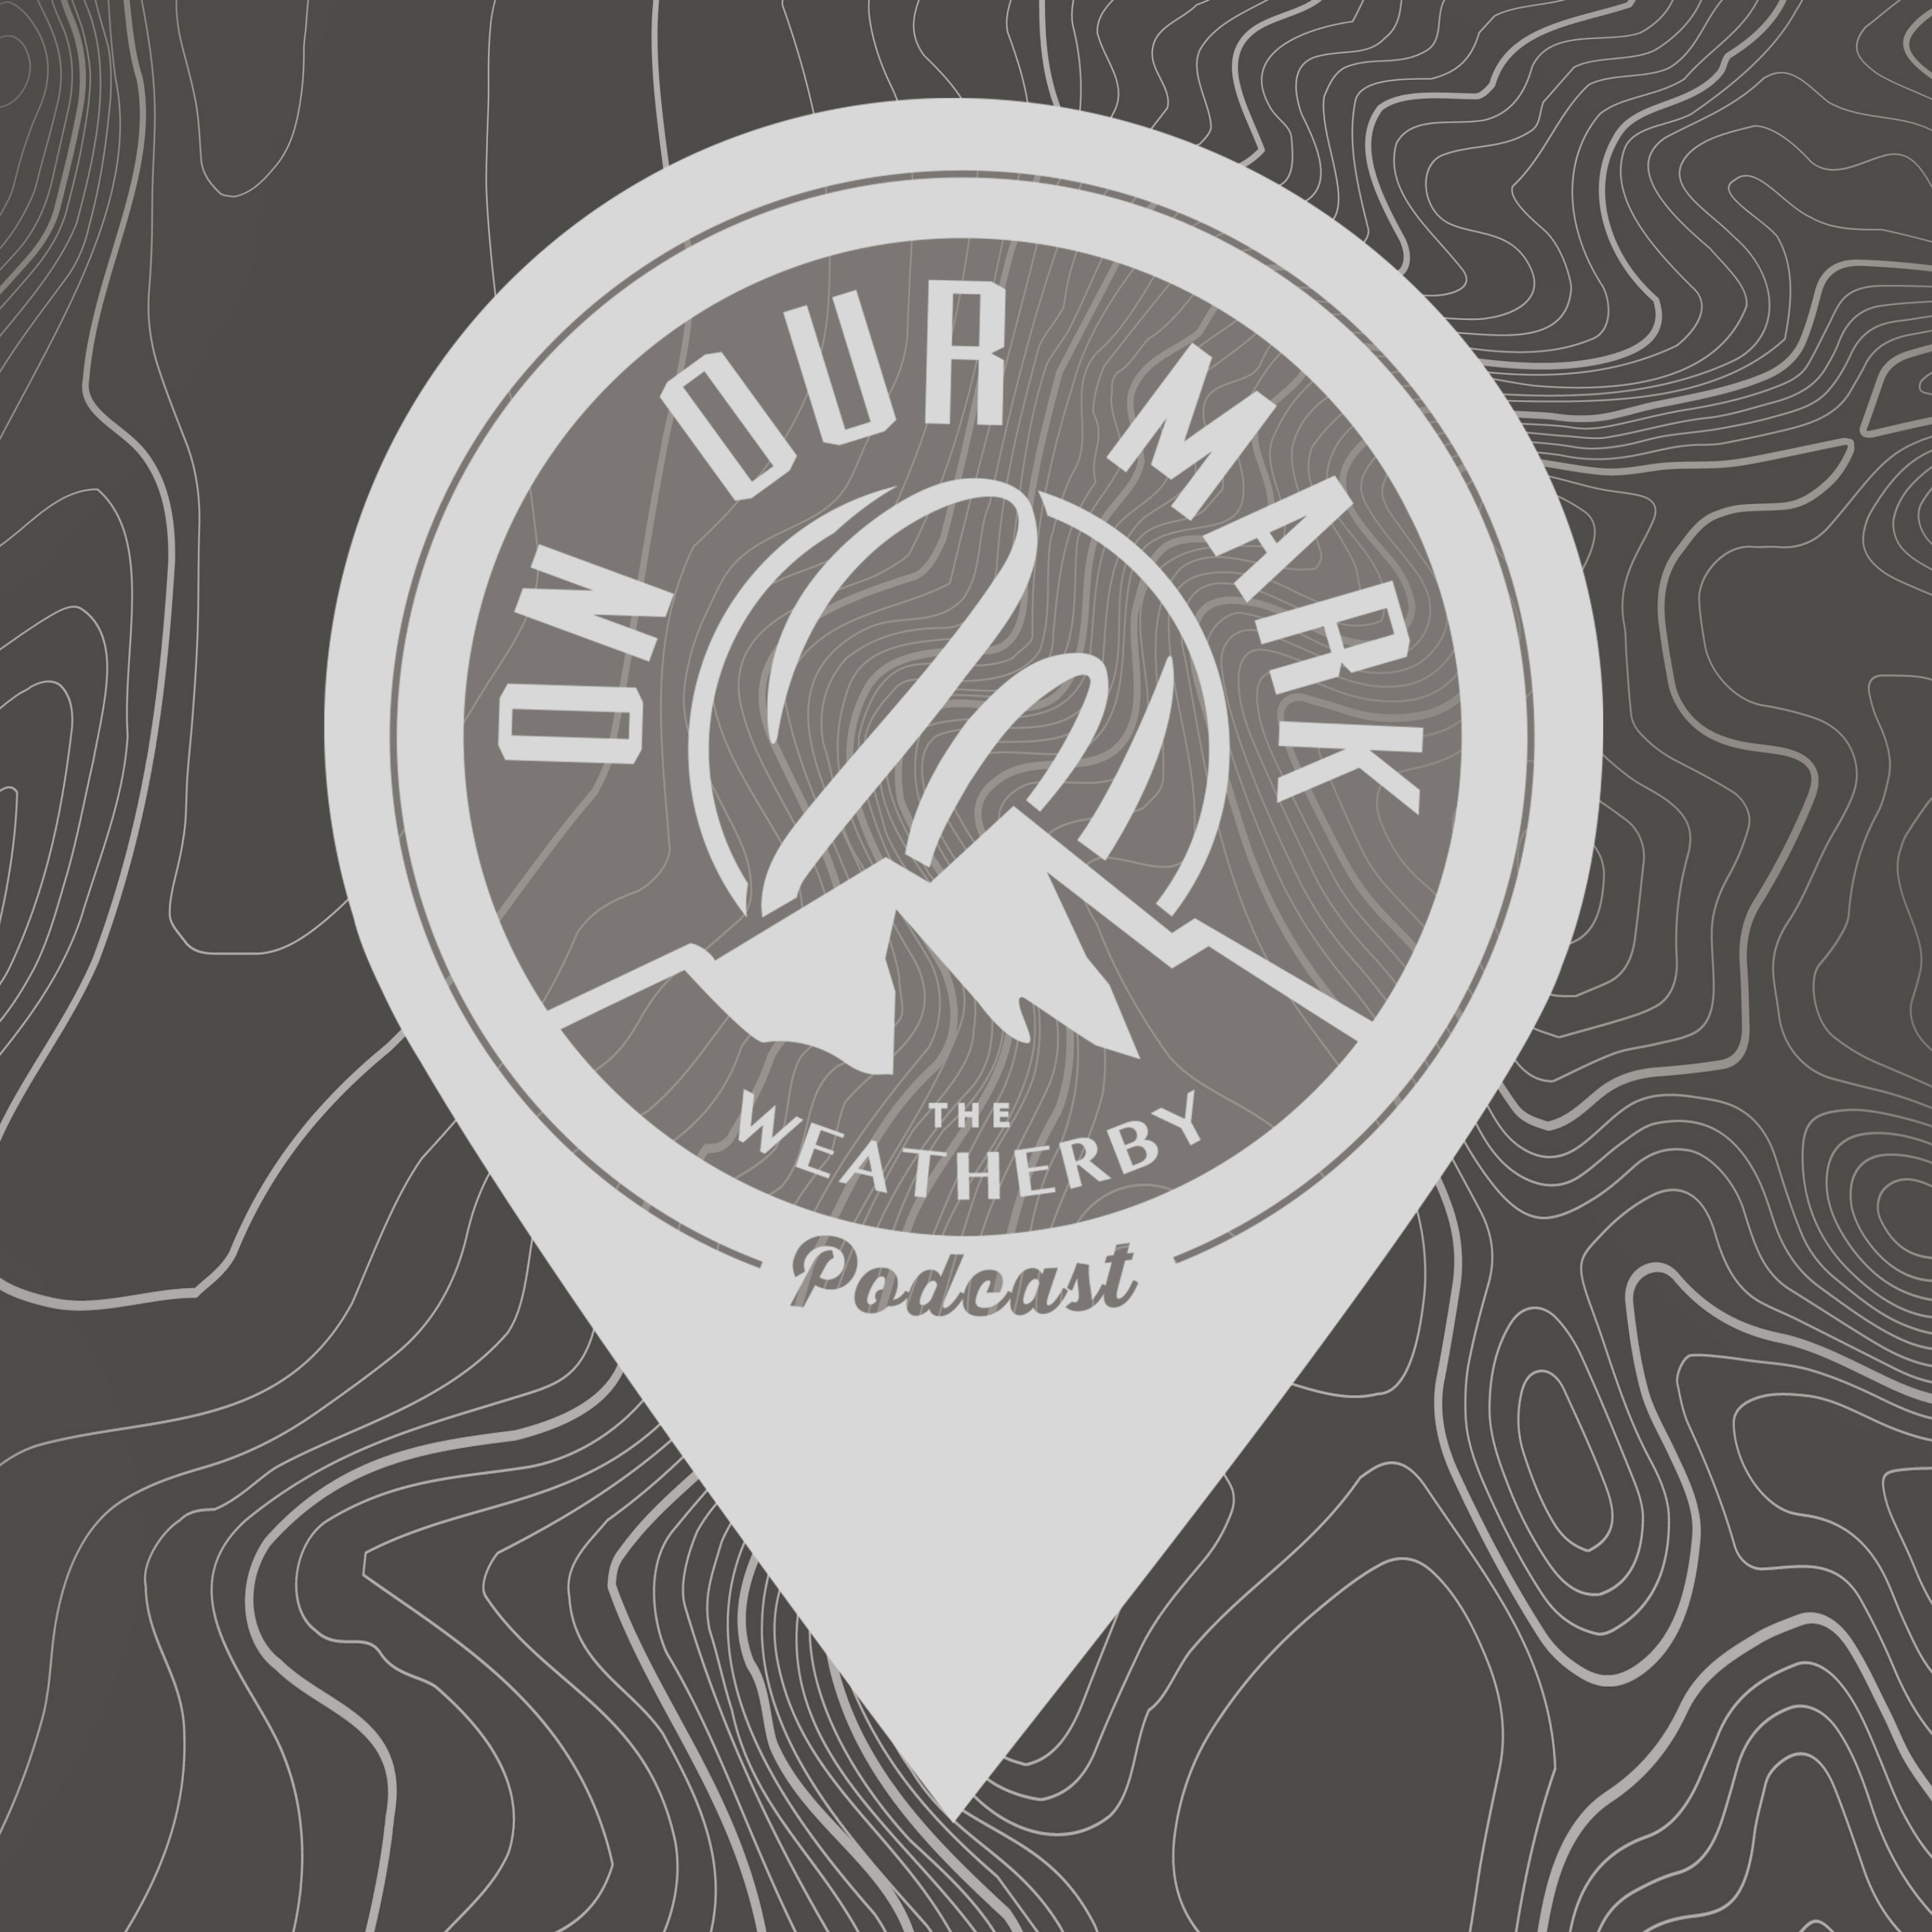 On Our Mark: The Weatherby Podcast